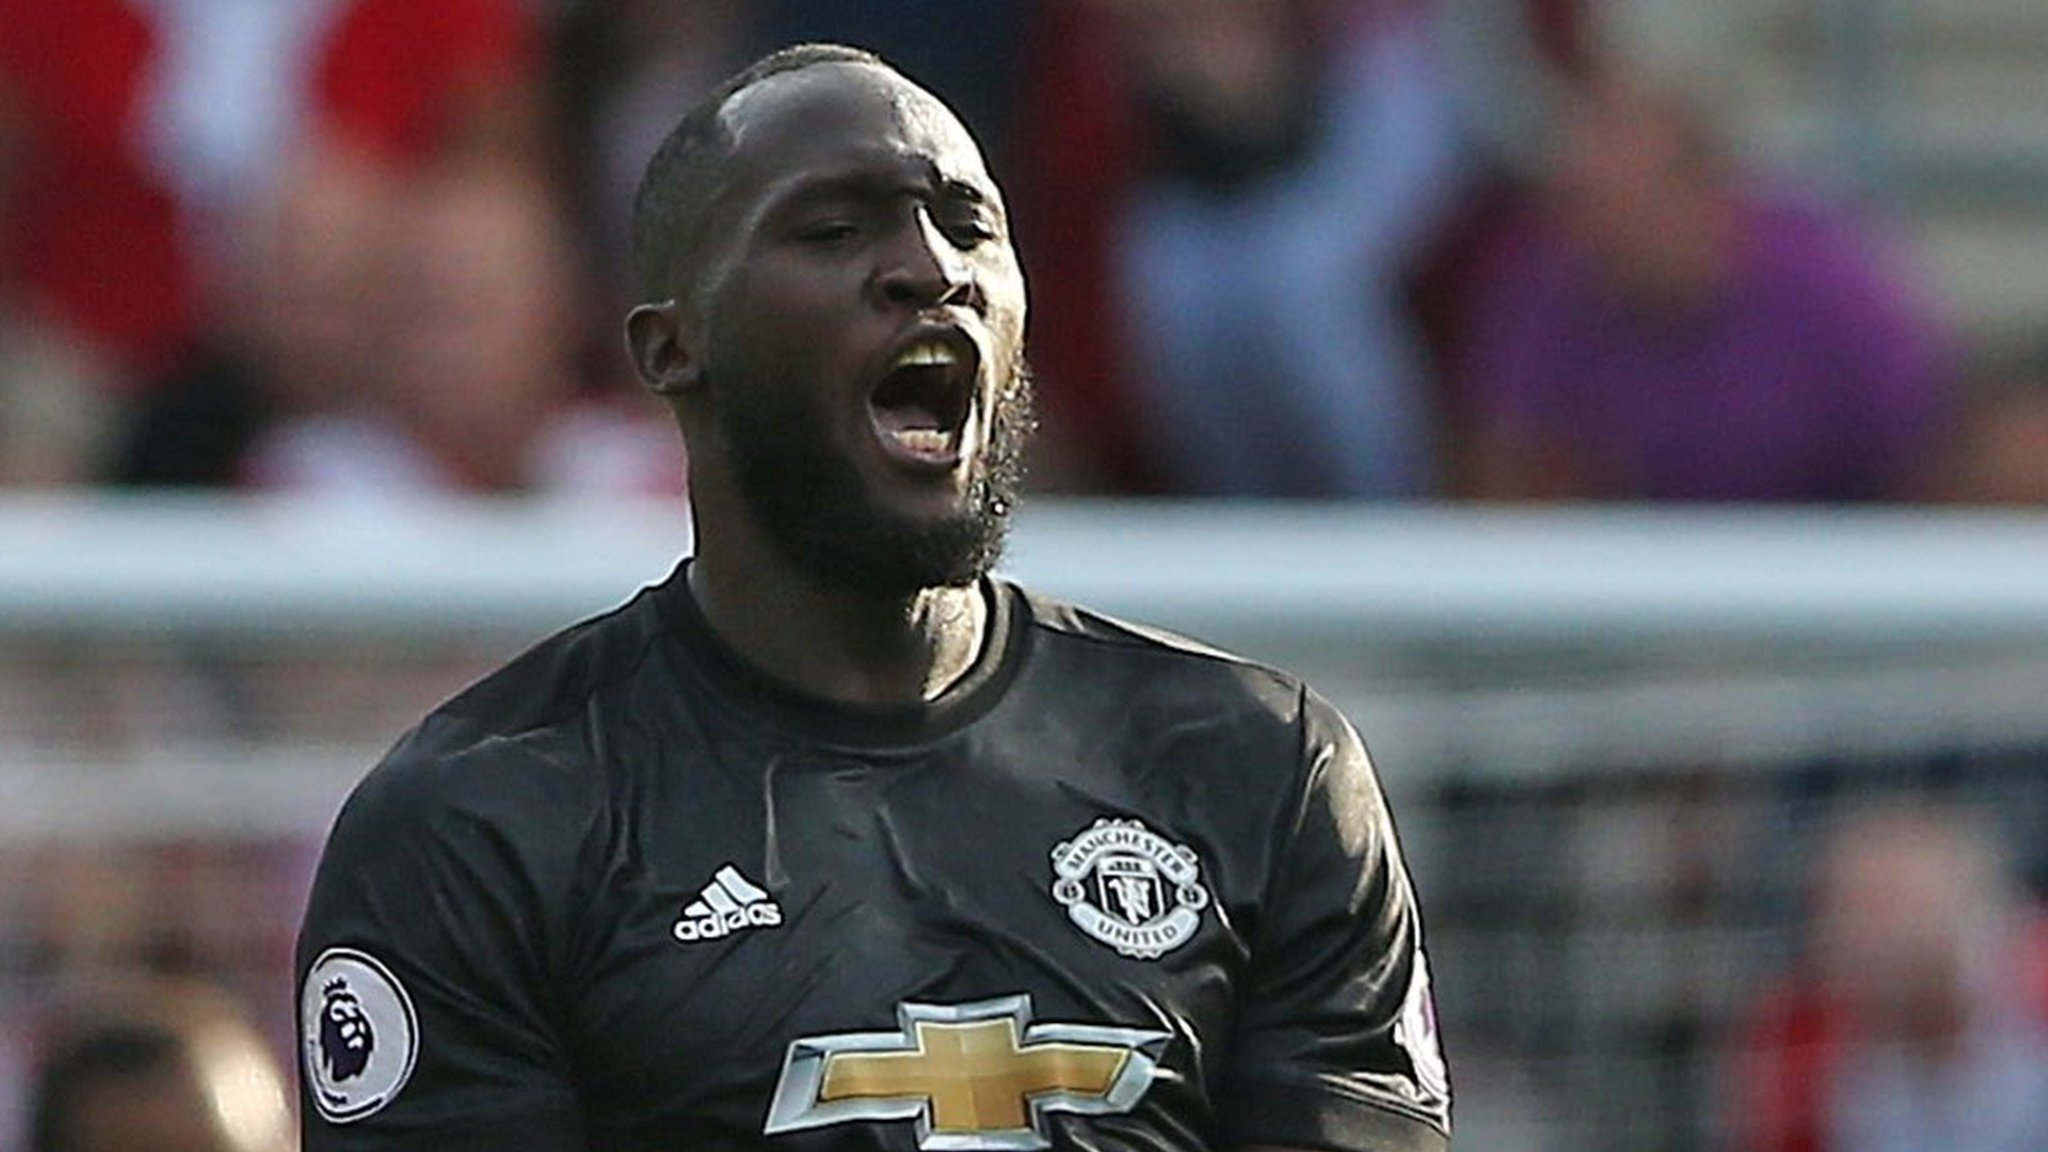 Romelu Lukaku: Man Utd ask for CCTV footage over controversial chant